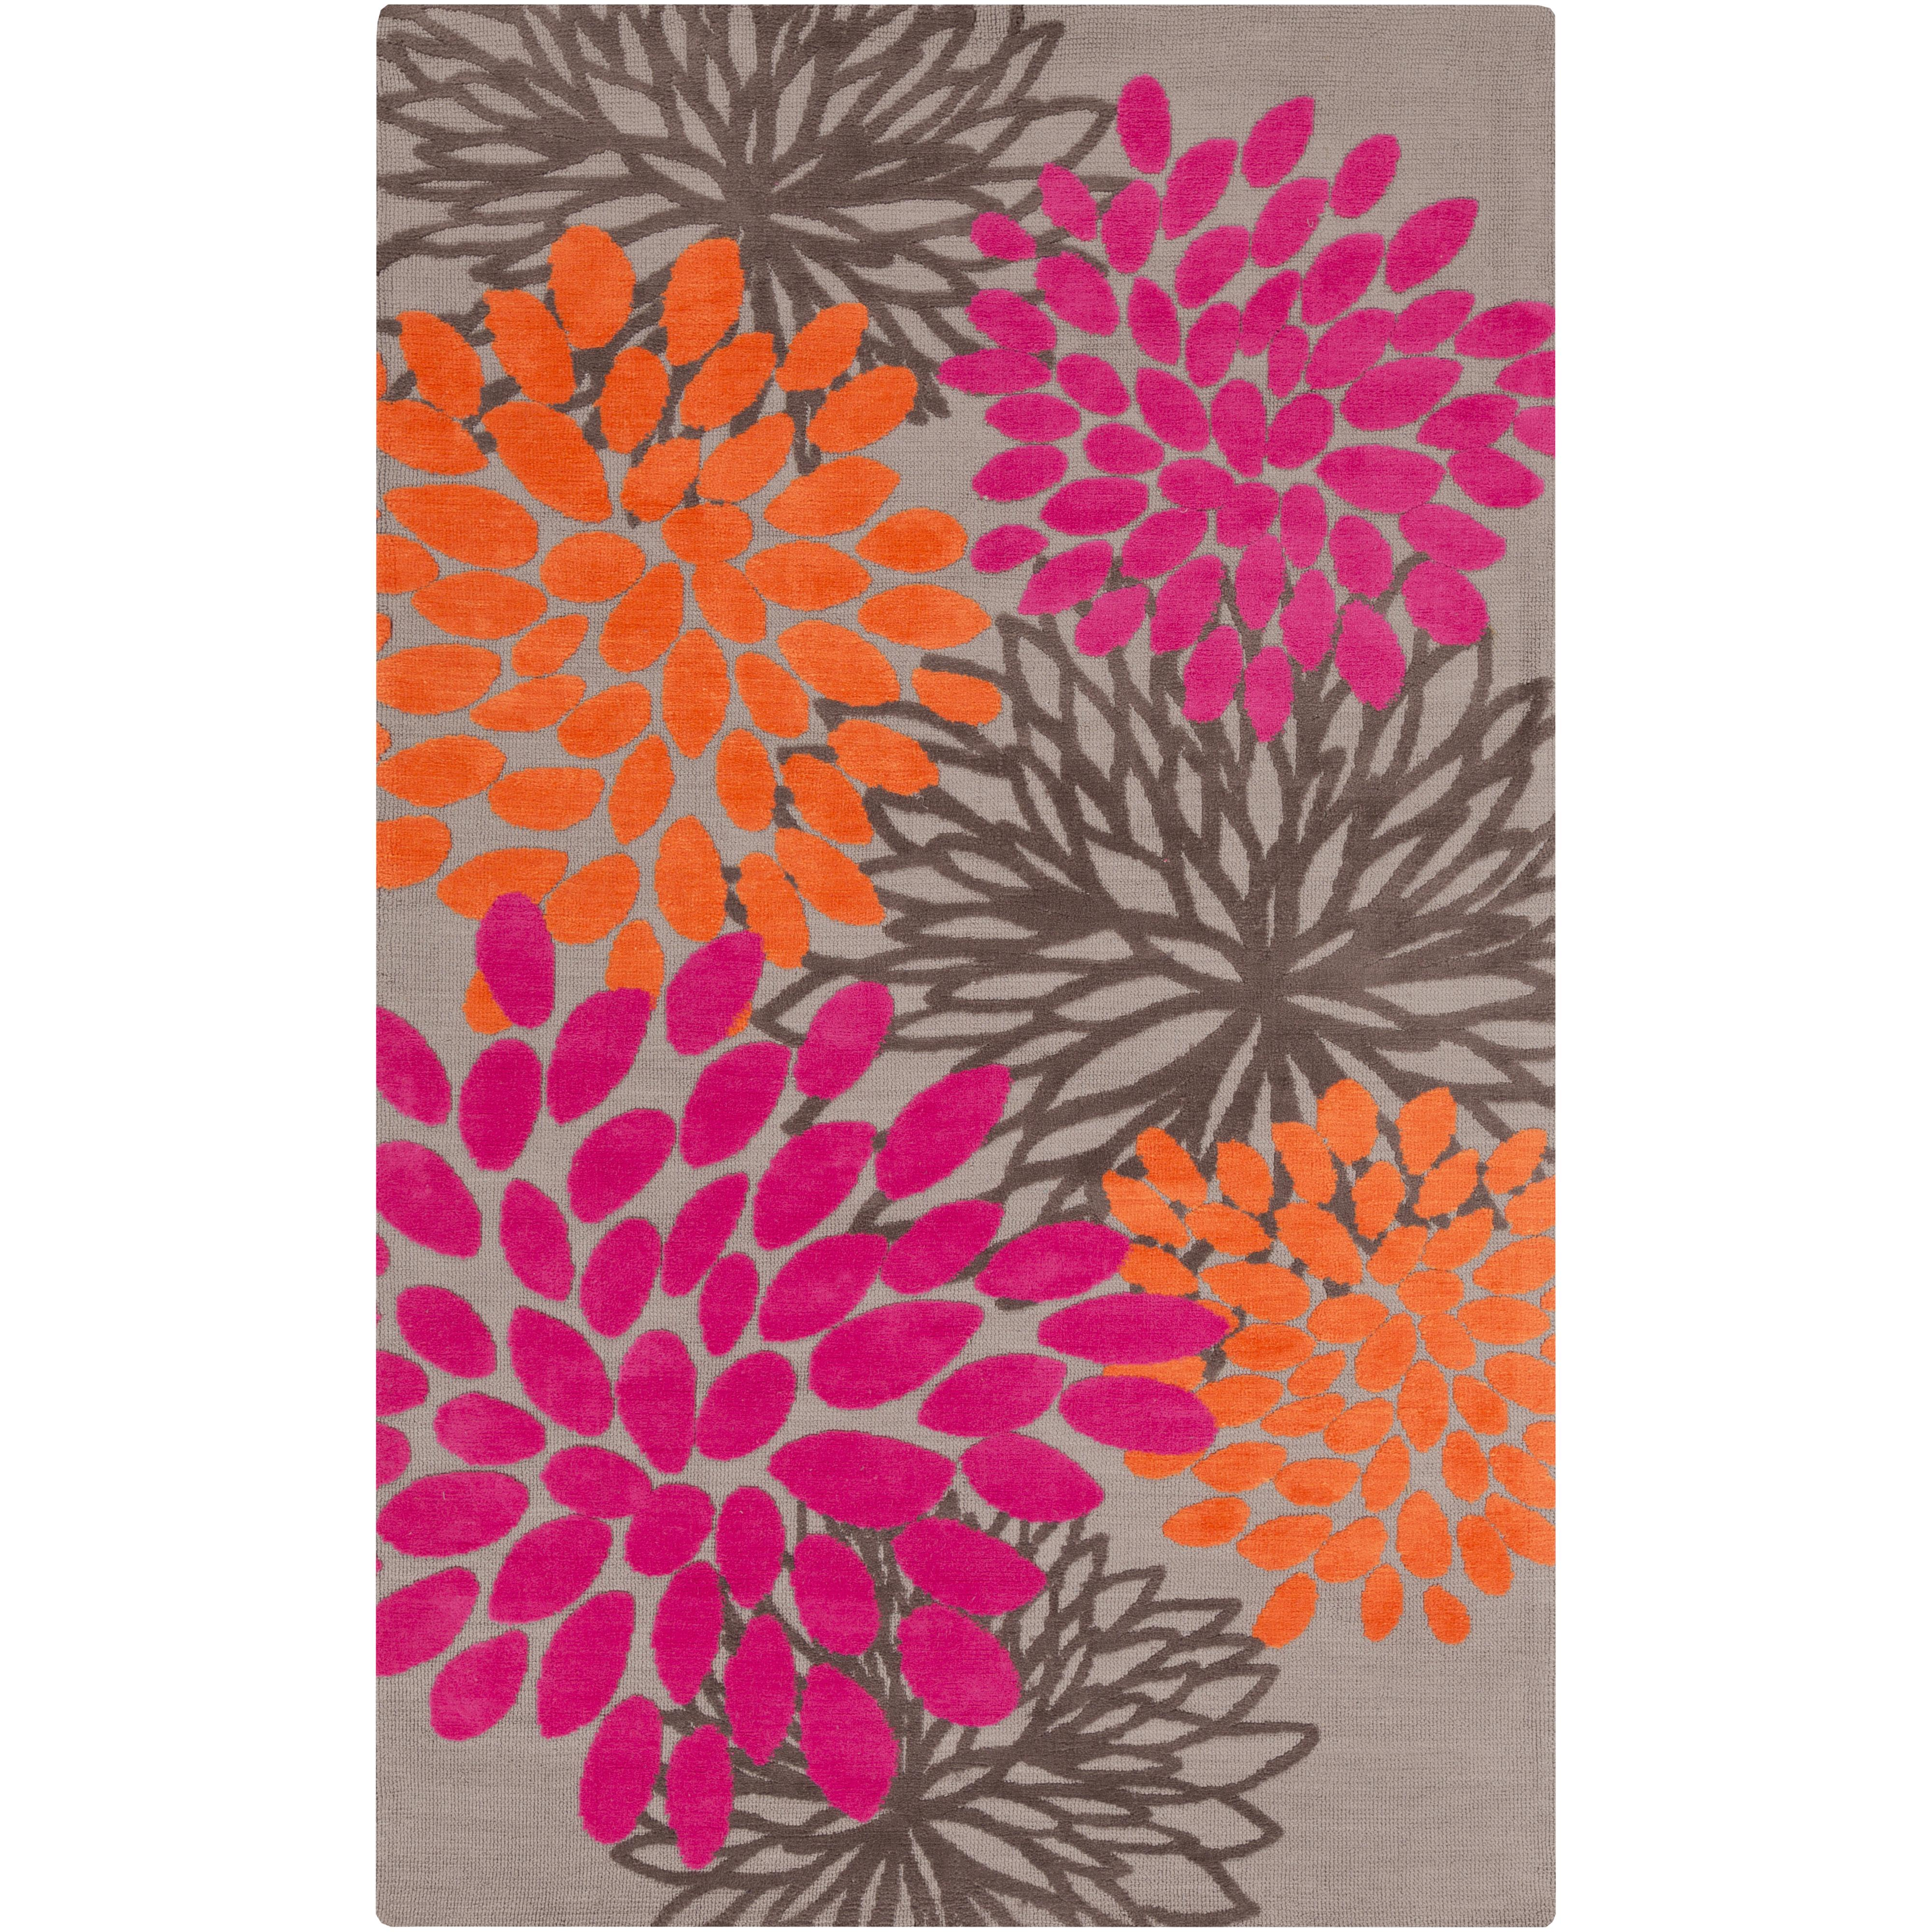 Abigail 5' x 8' by Surya at Upper Room Home Furnishings